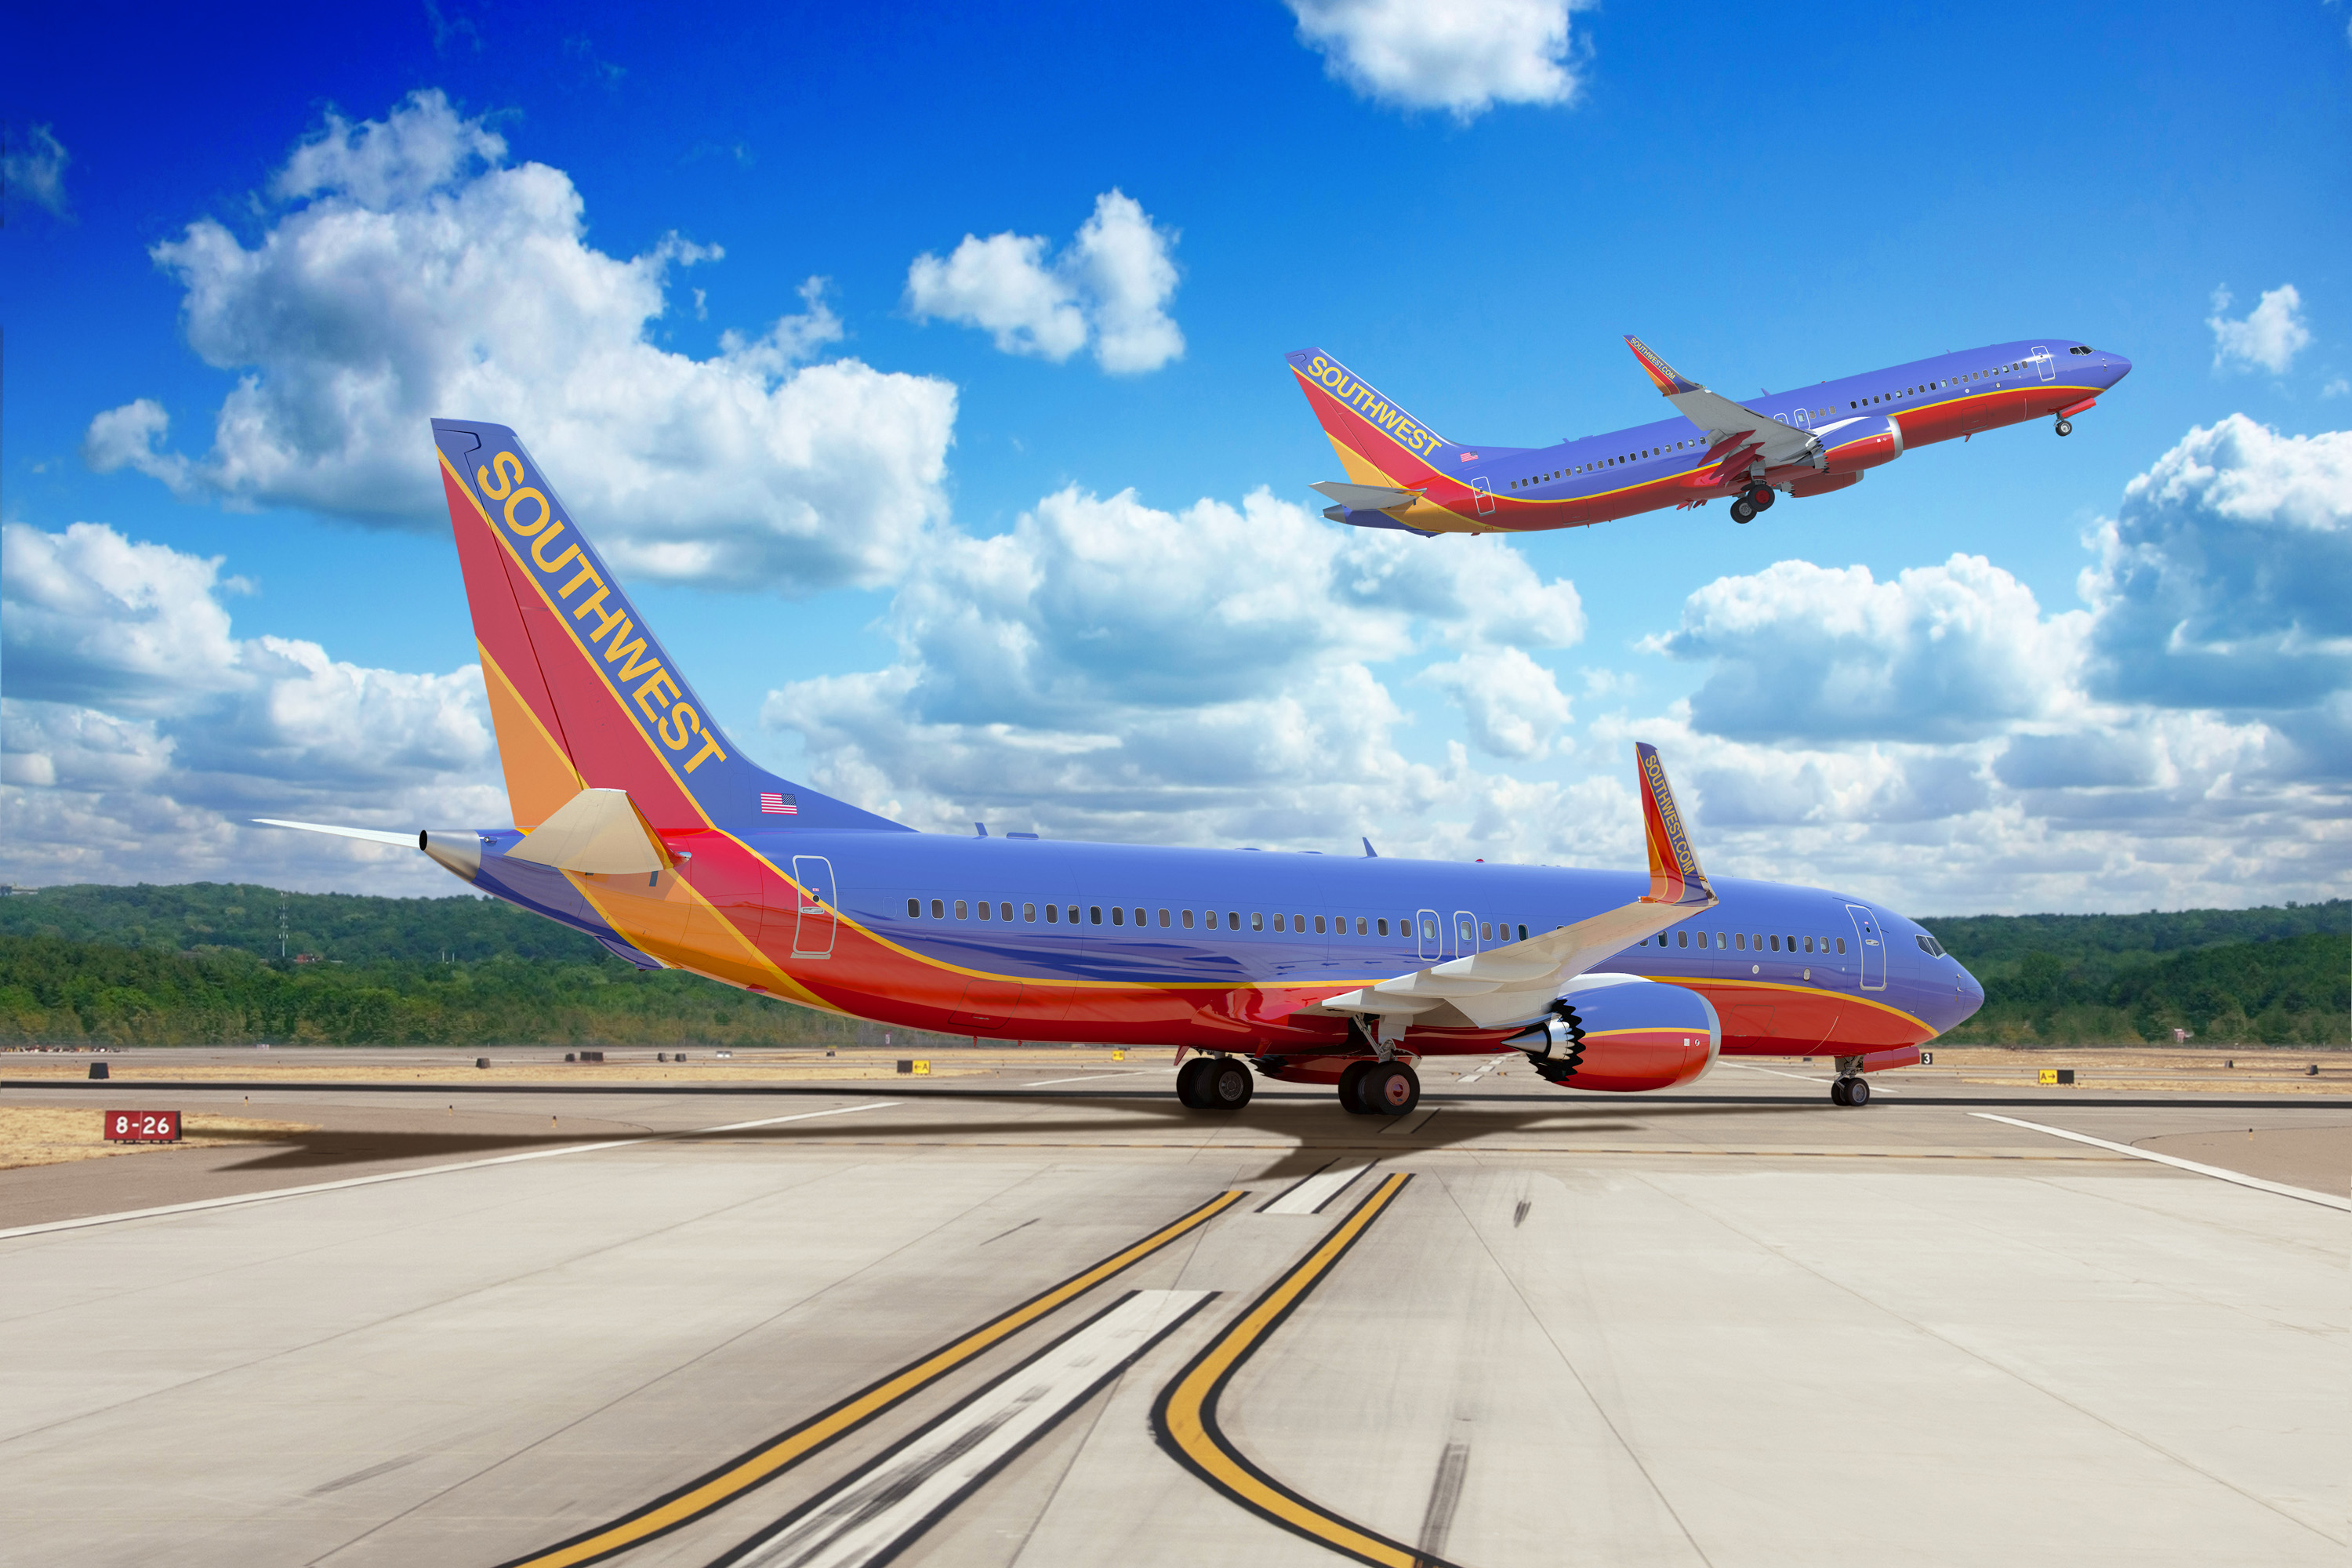 How Big Data and the Industrial Internet Can Help Southwest Save $100 Million on Fuel